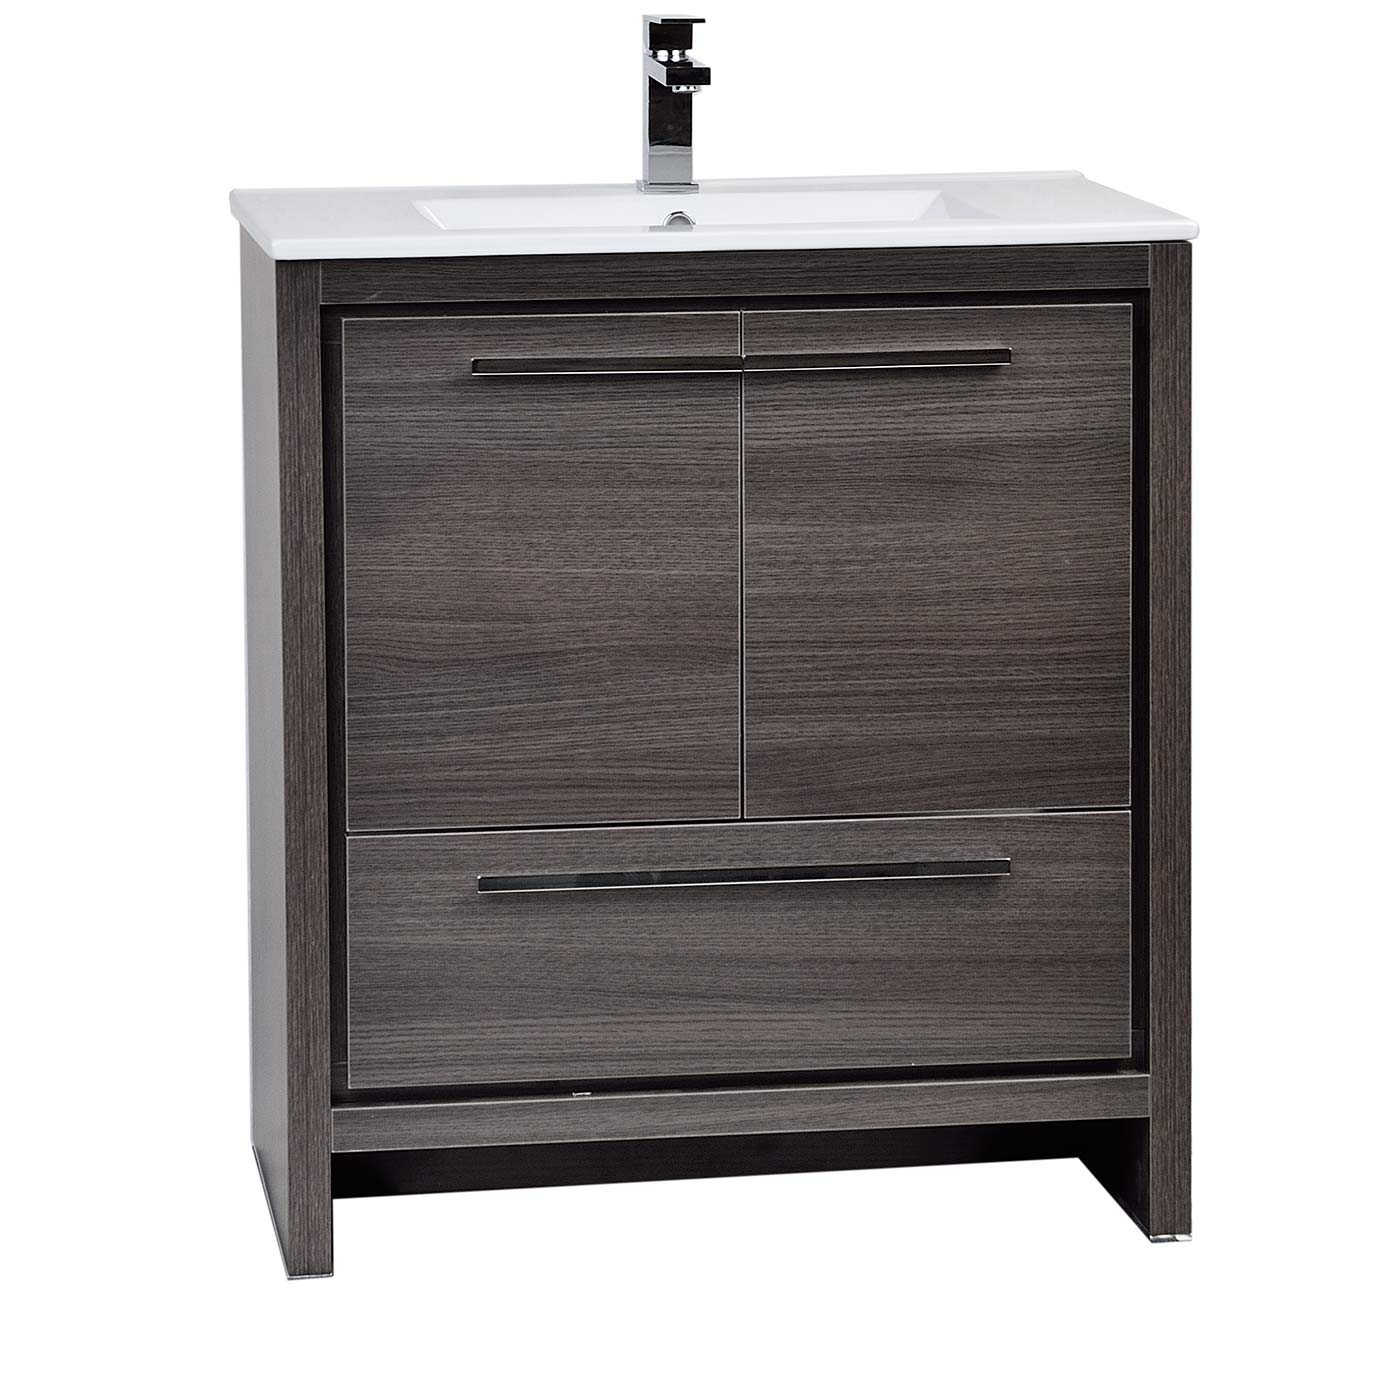 Buy Cbi Enna 29 5 Inch Grey Oak Modern Bathroom Vanity Tn La750 Go On